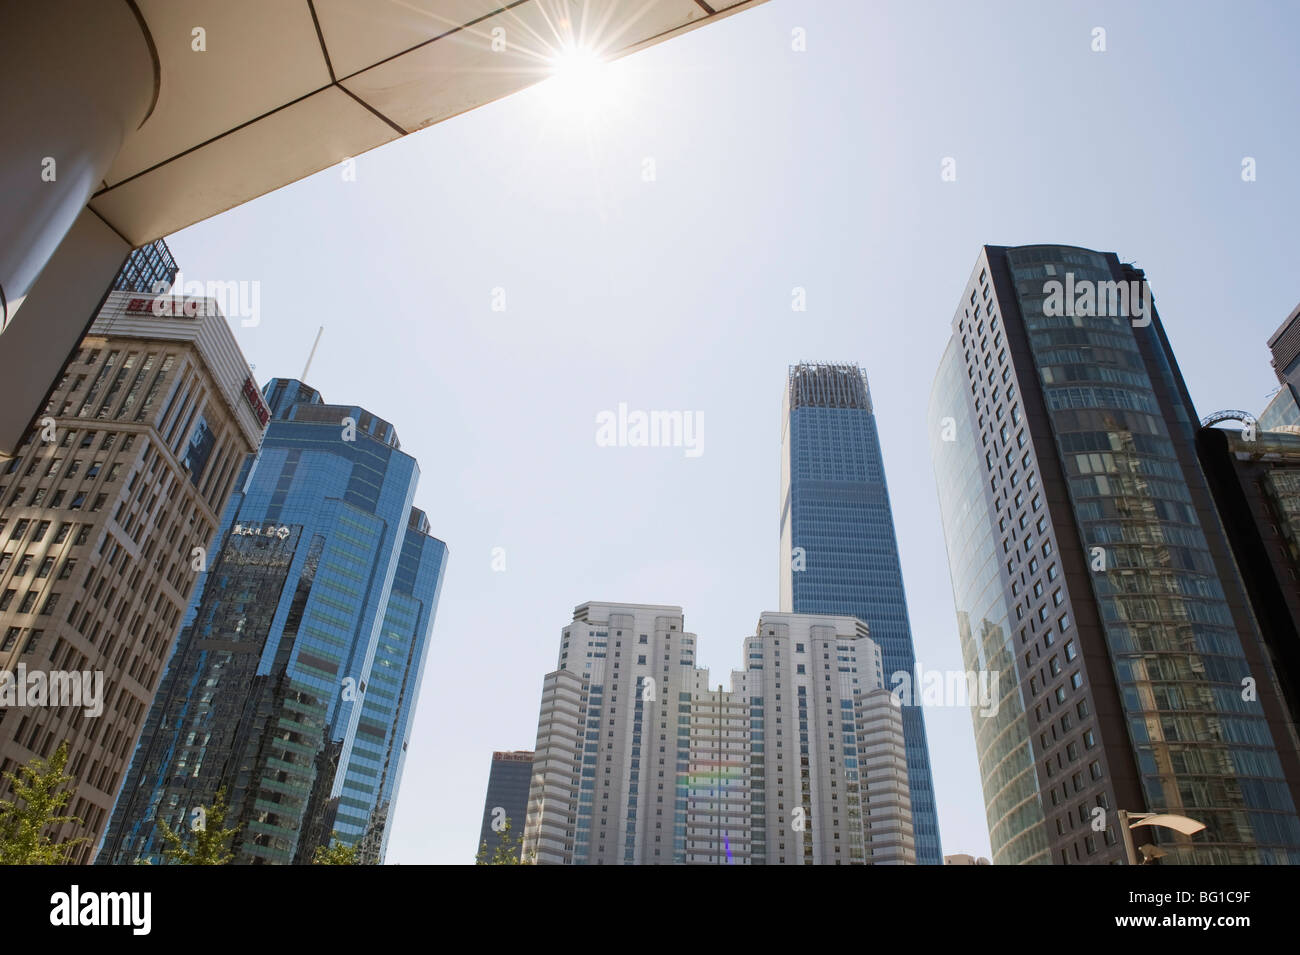 Skyline of offices and the World Trade Centre Phase 3 building in the background, in Guomao CBD, Beijing, China, - Stock Image